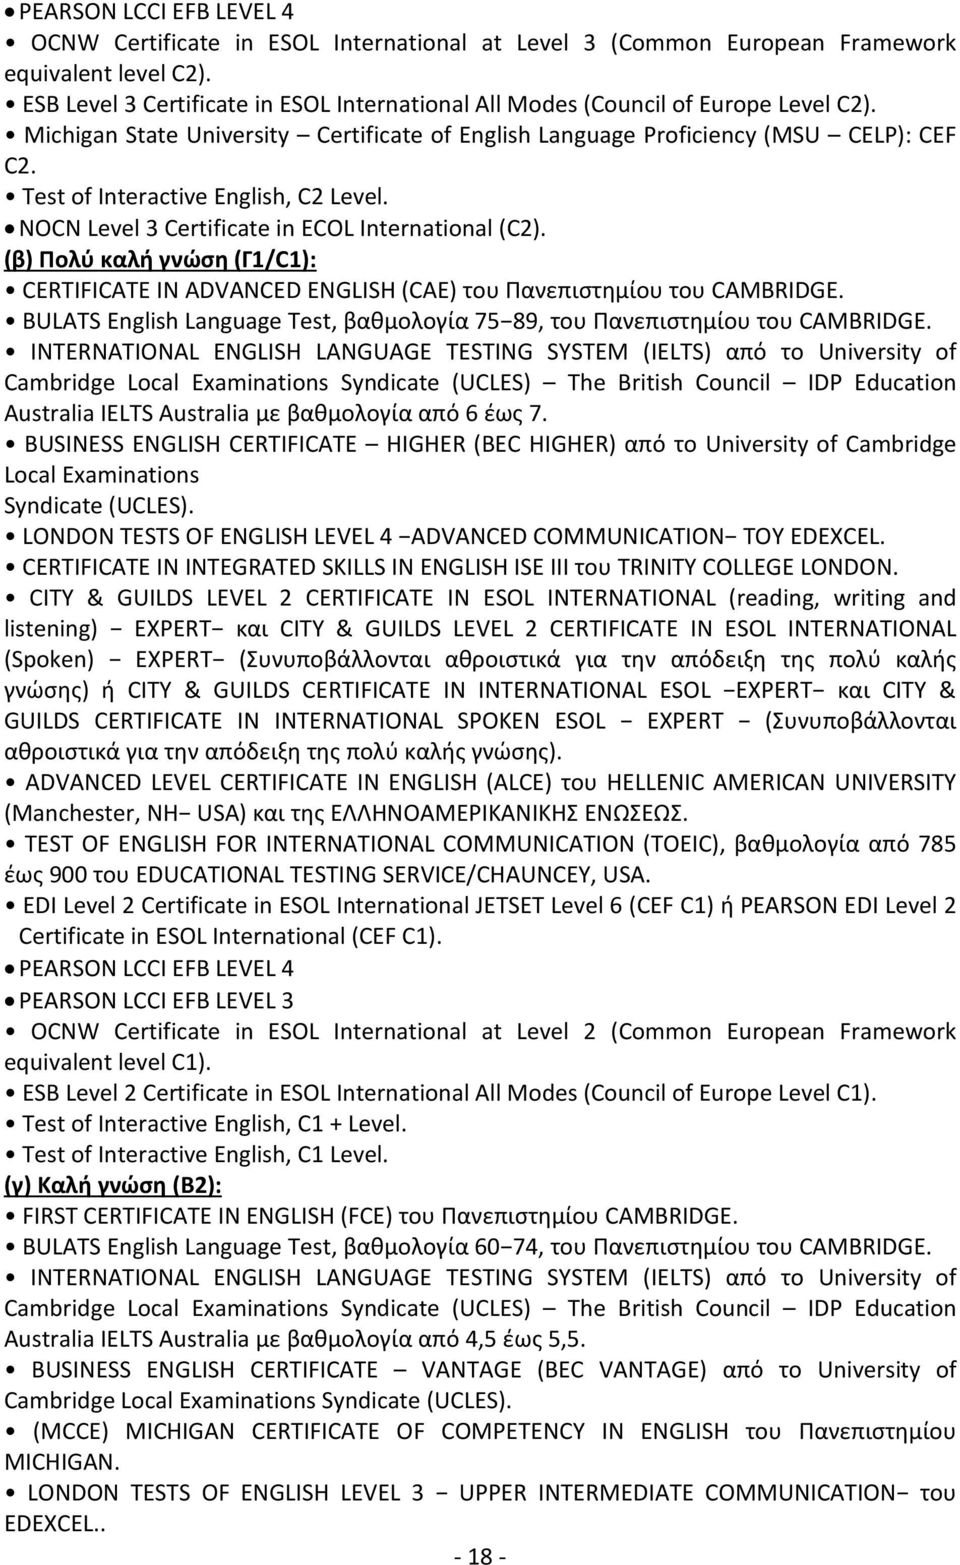 Test of Interactive English, C2 Level. NOCN Level 3 Certificate in ECOL International (C2). (β) Πολύ καλή γνώση (Γ1/C1): CERTIFICATE IN ADVANCED ENGLISH (CAE) του Πανεπιστημίου του CAMBRIDGE.